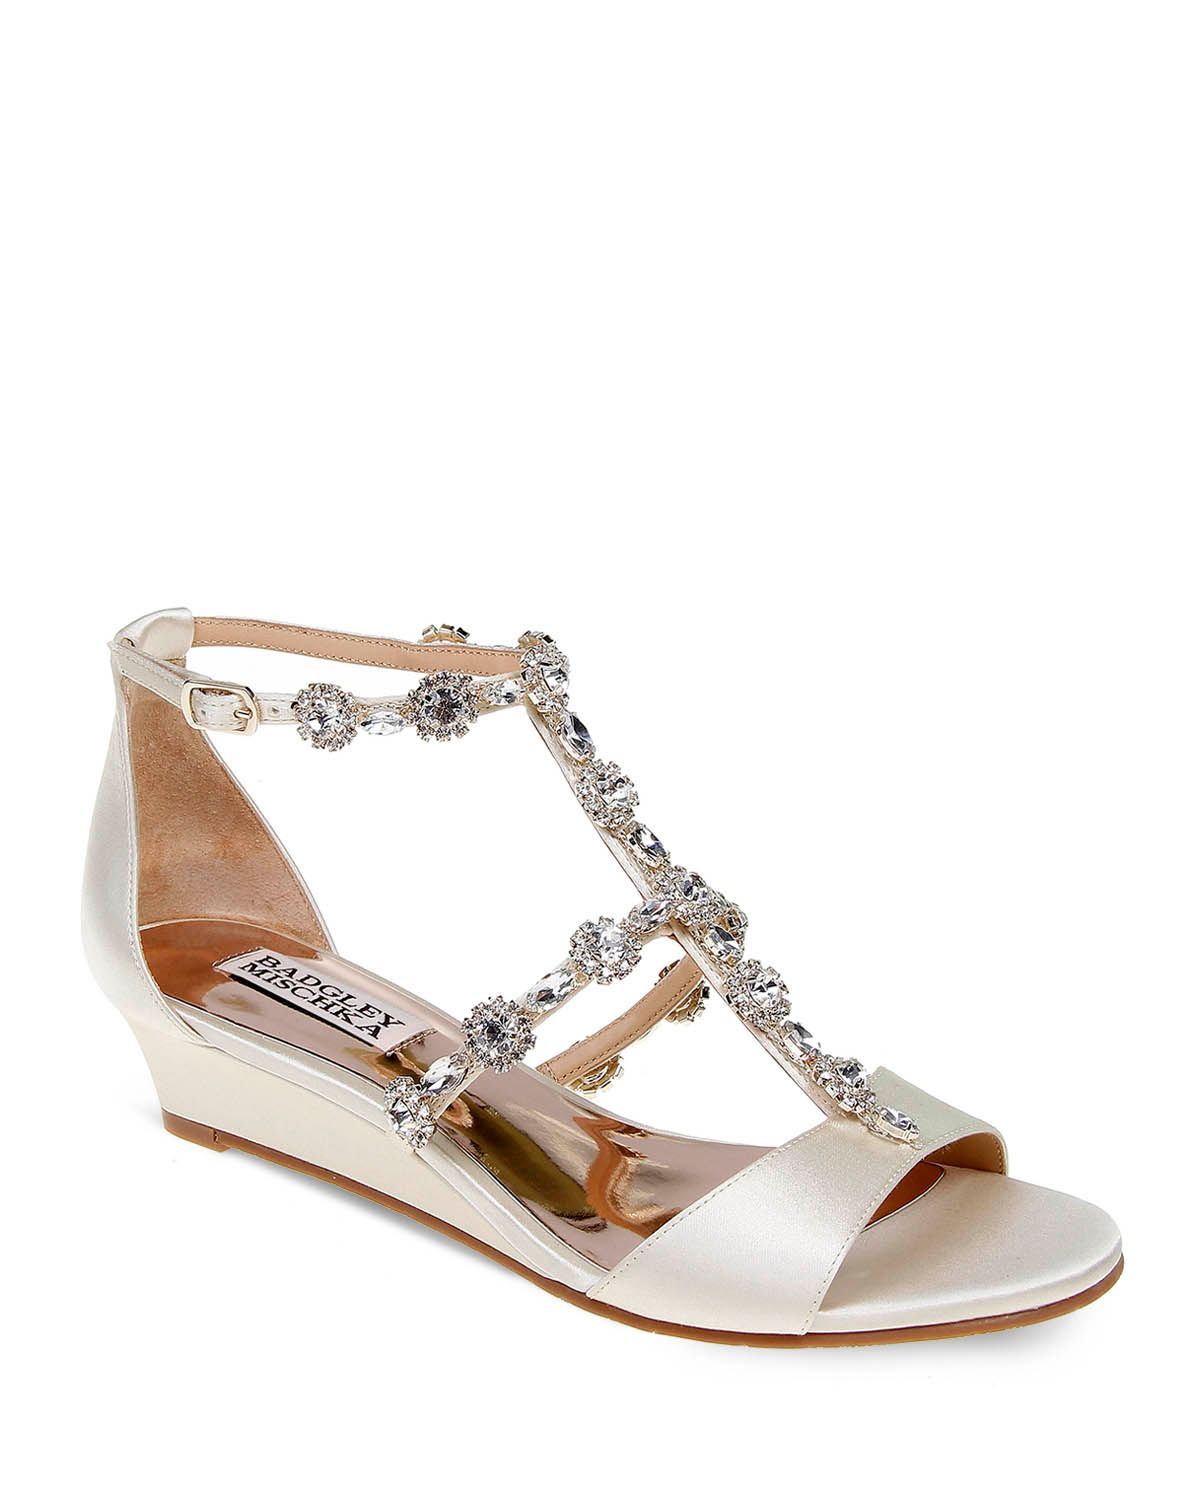 Badgley Mischka Terry Embellished T Strap Wedge Sandals